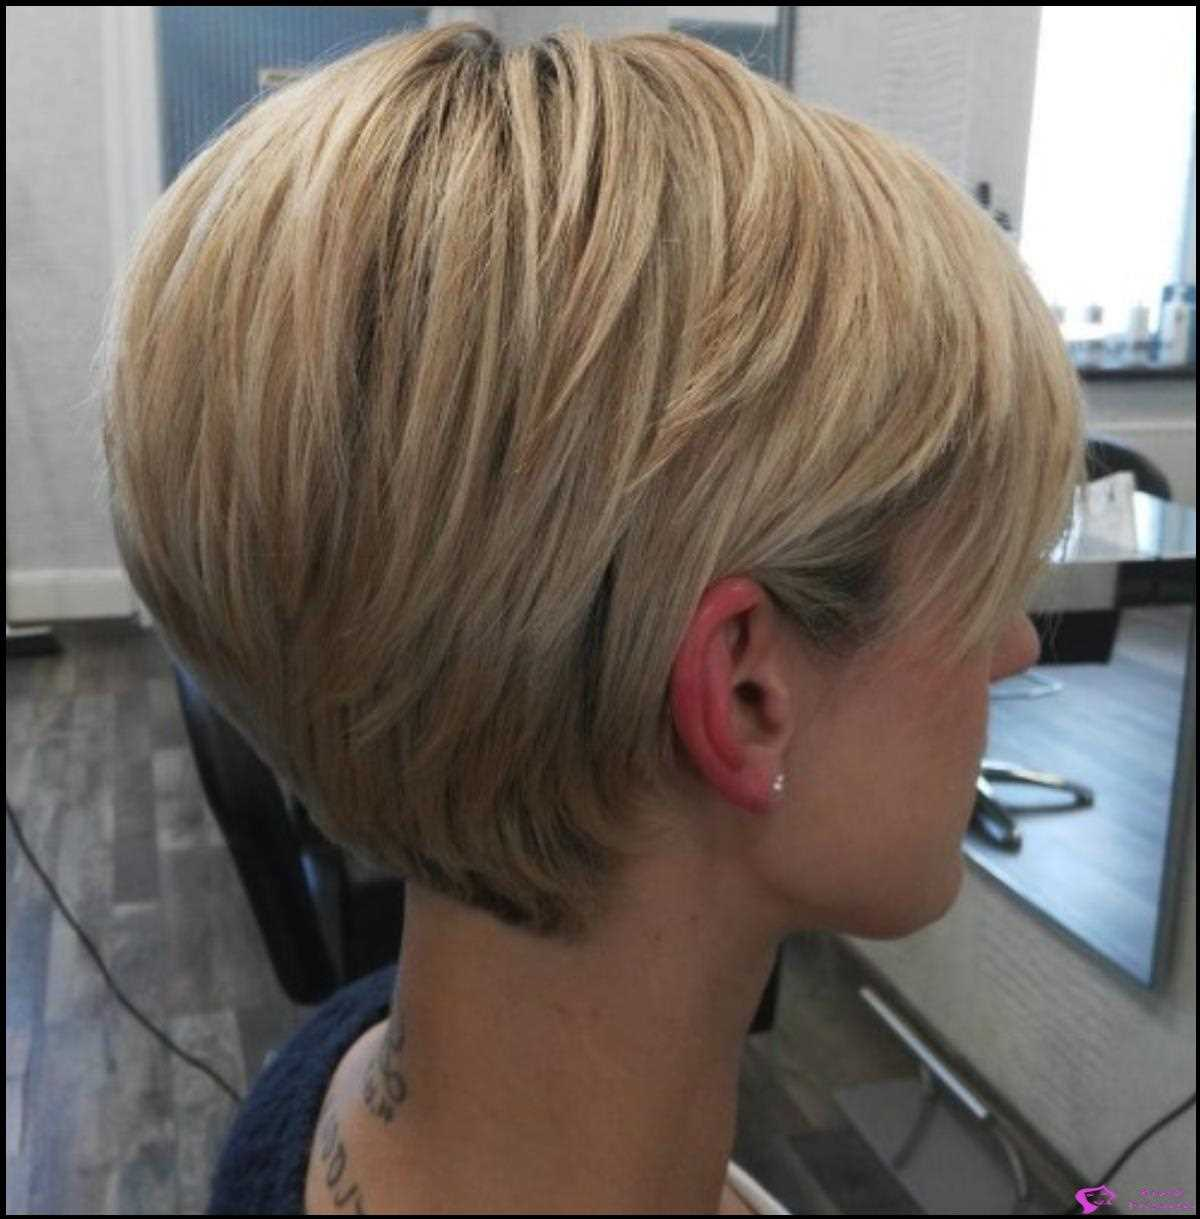 40: Long TapeRot Blonde Pixie